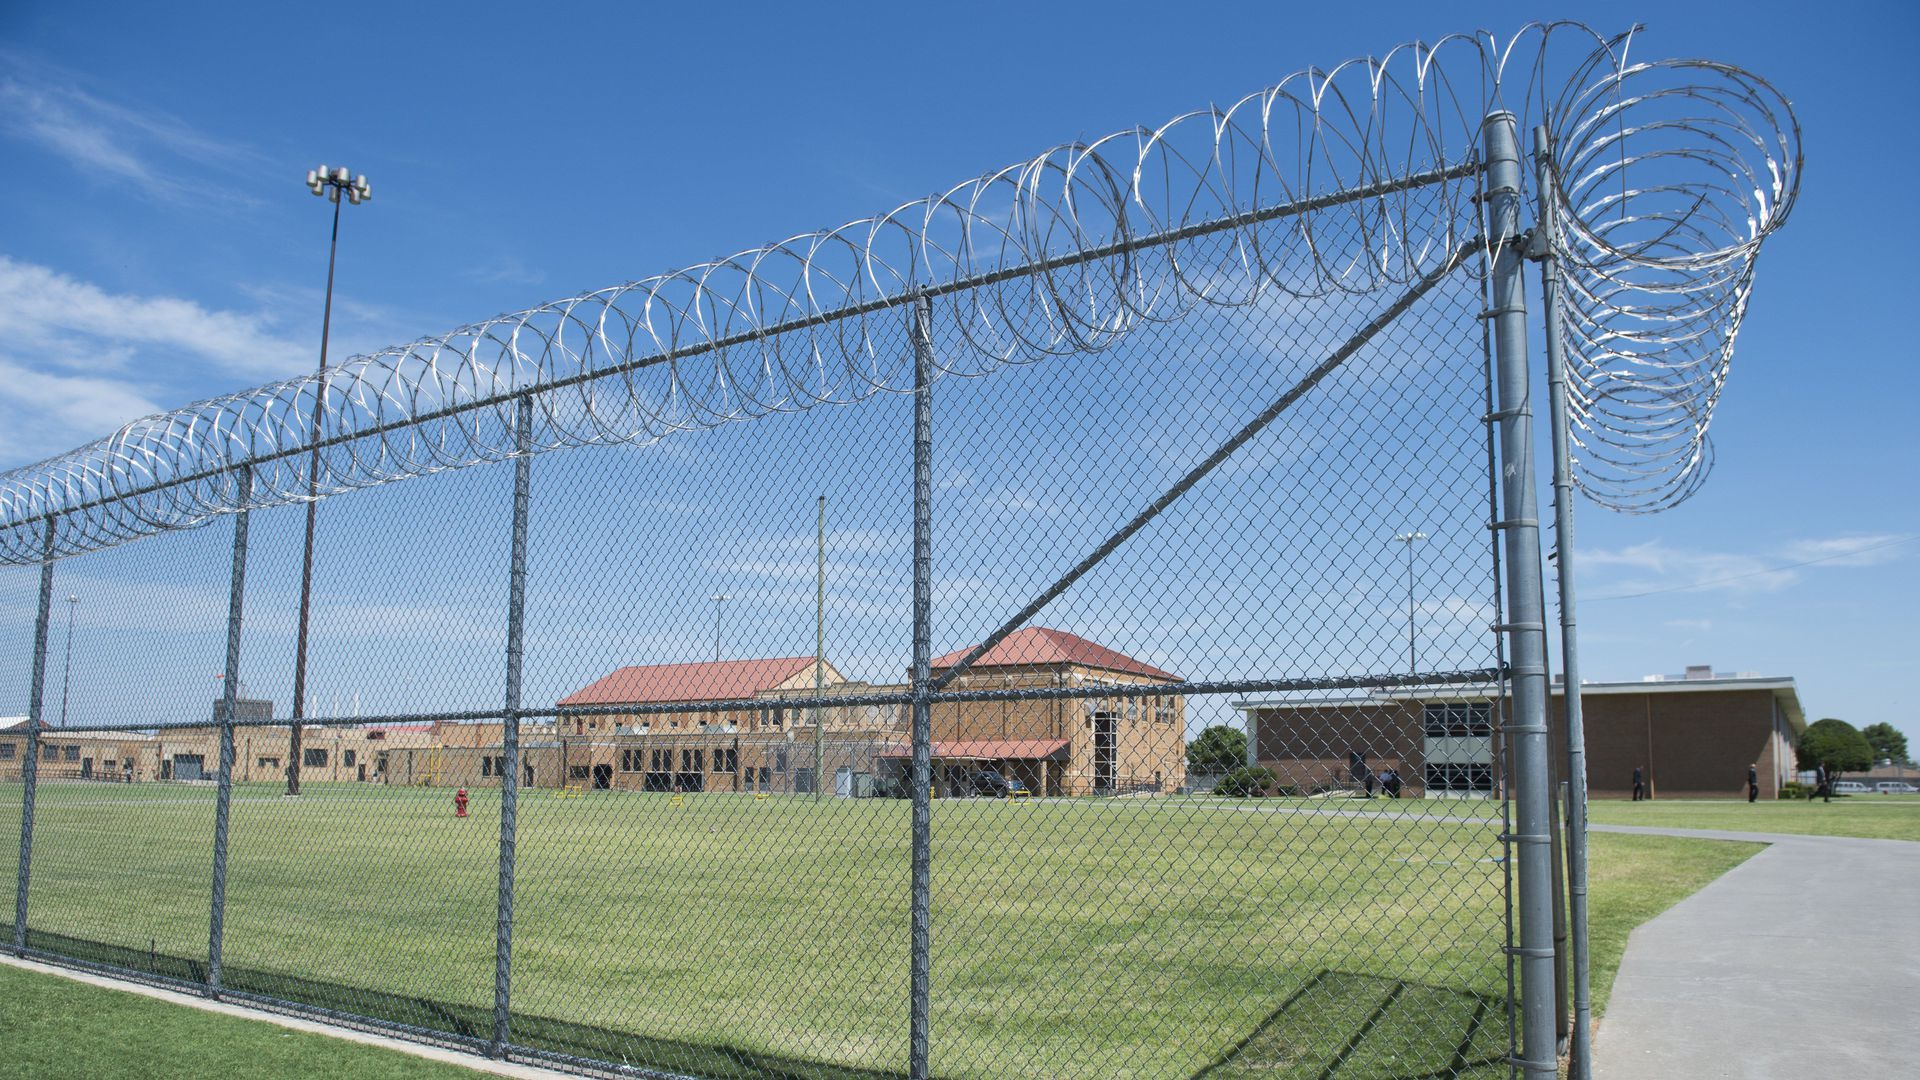 El Reno Federal Correctional Institution in El Reno, Oklahoma.